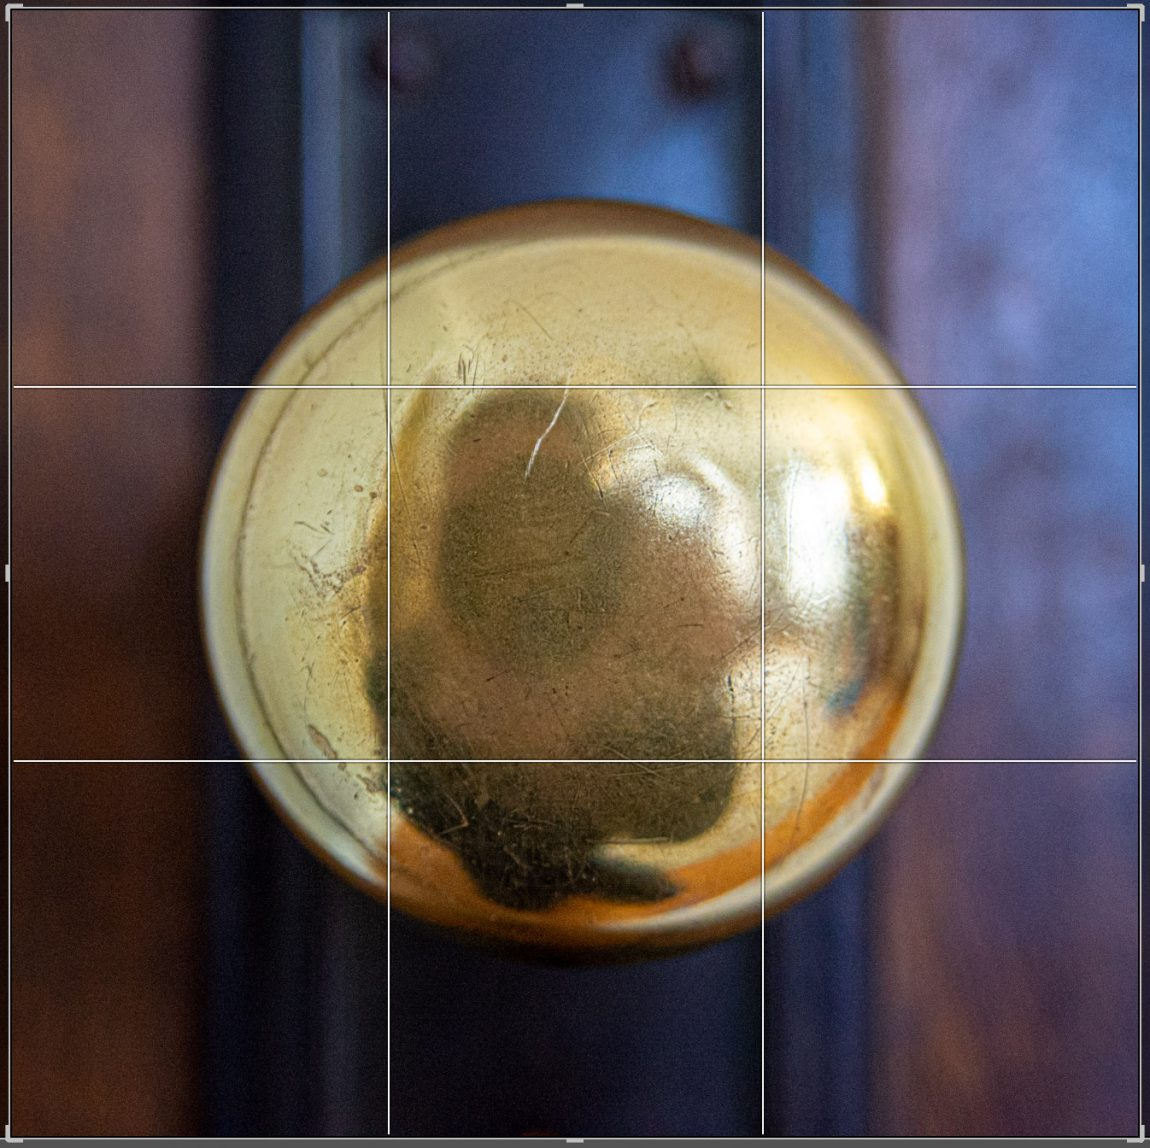 centering a doorknob in your photo composition